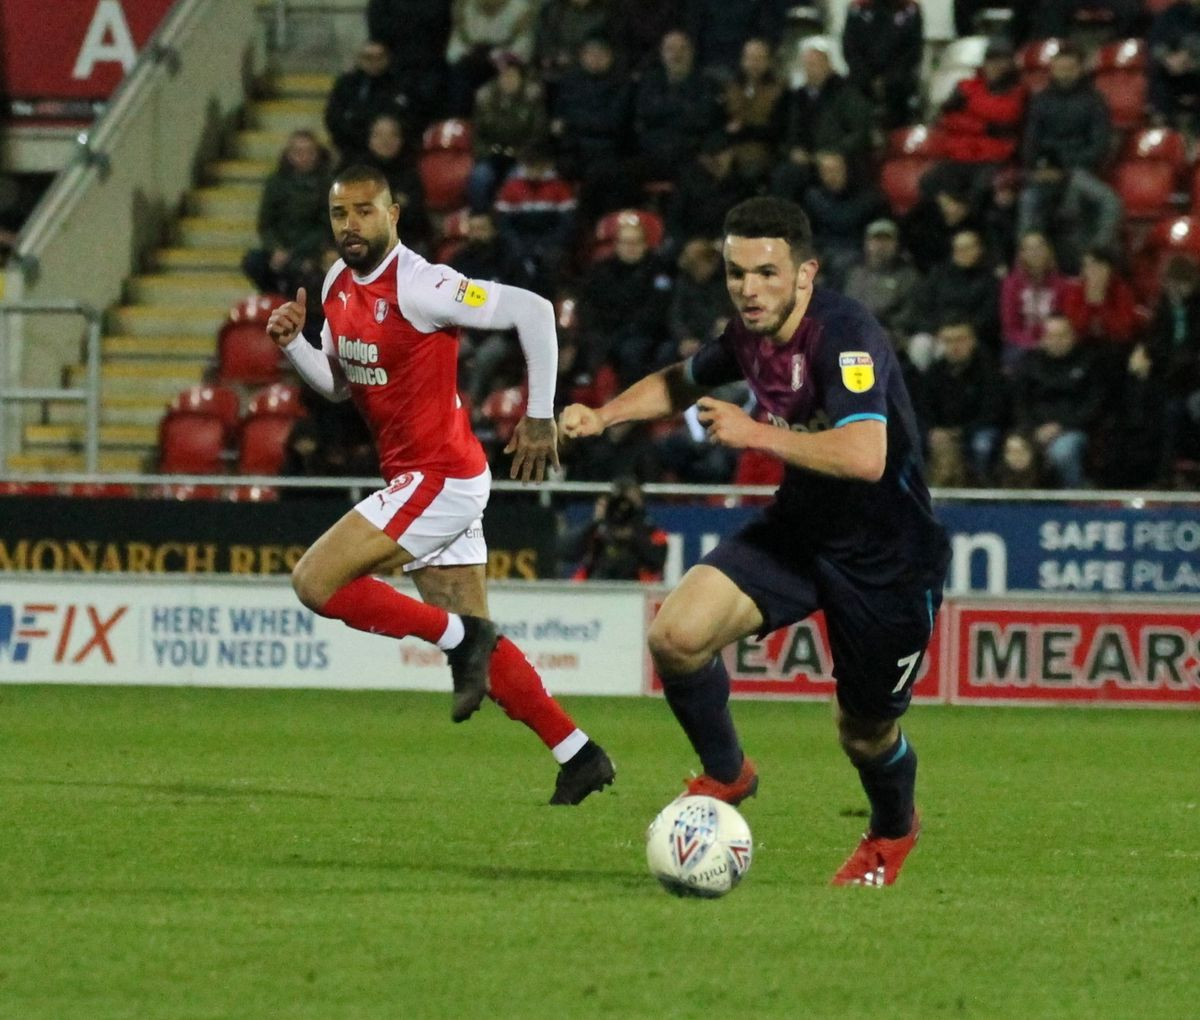 John McGinn in action at Rotherham. Pic: Dave Birt.